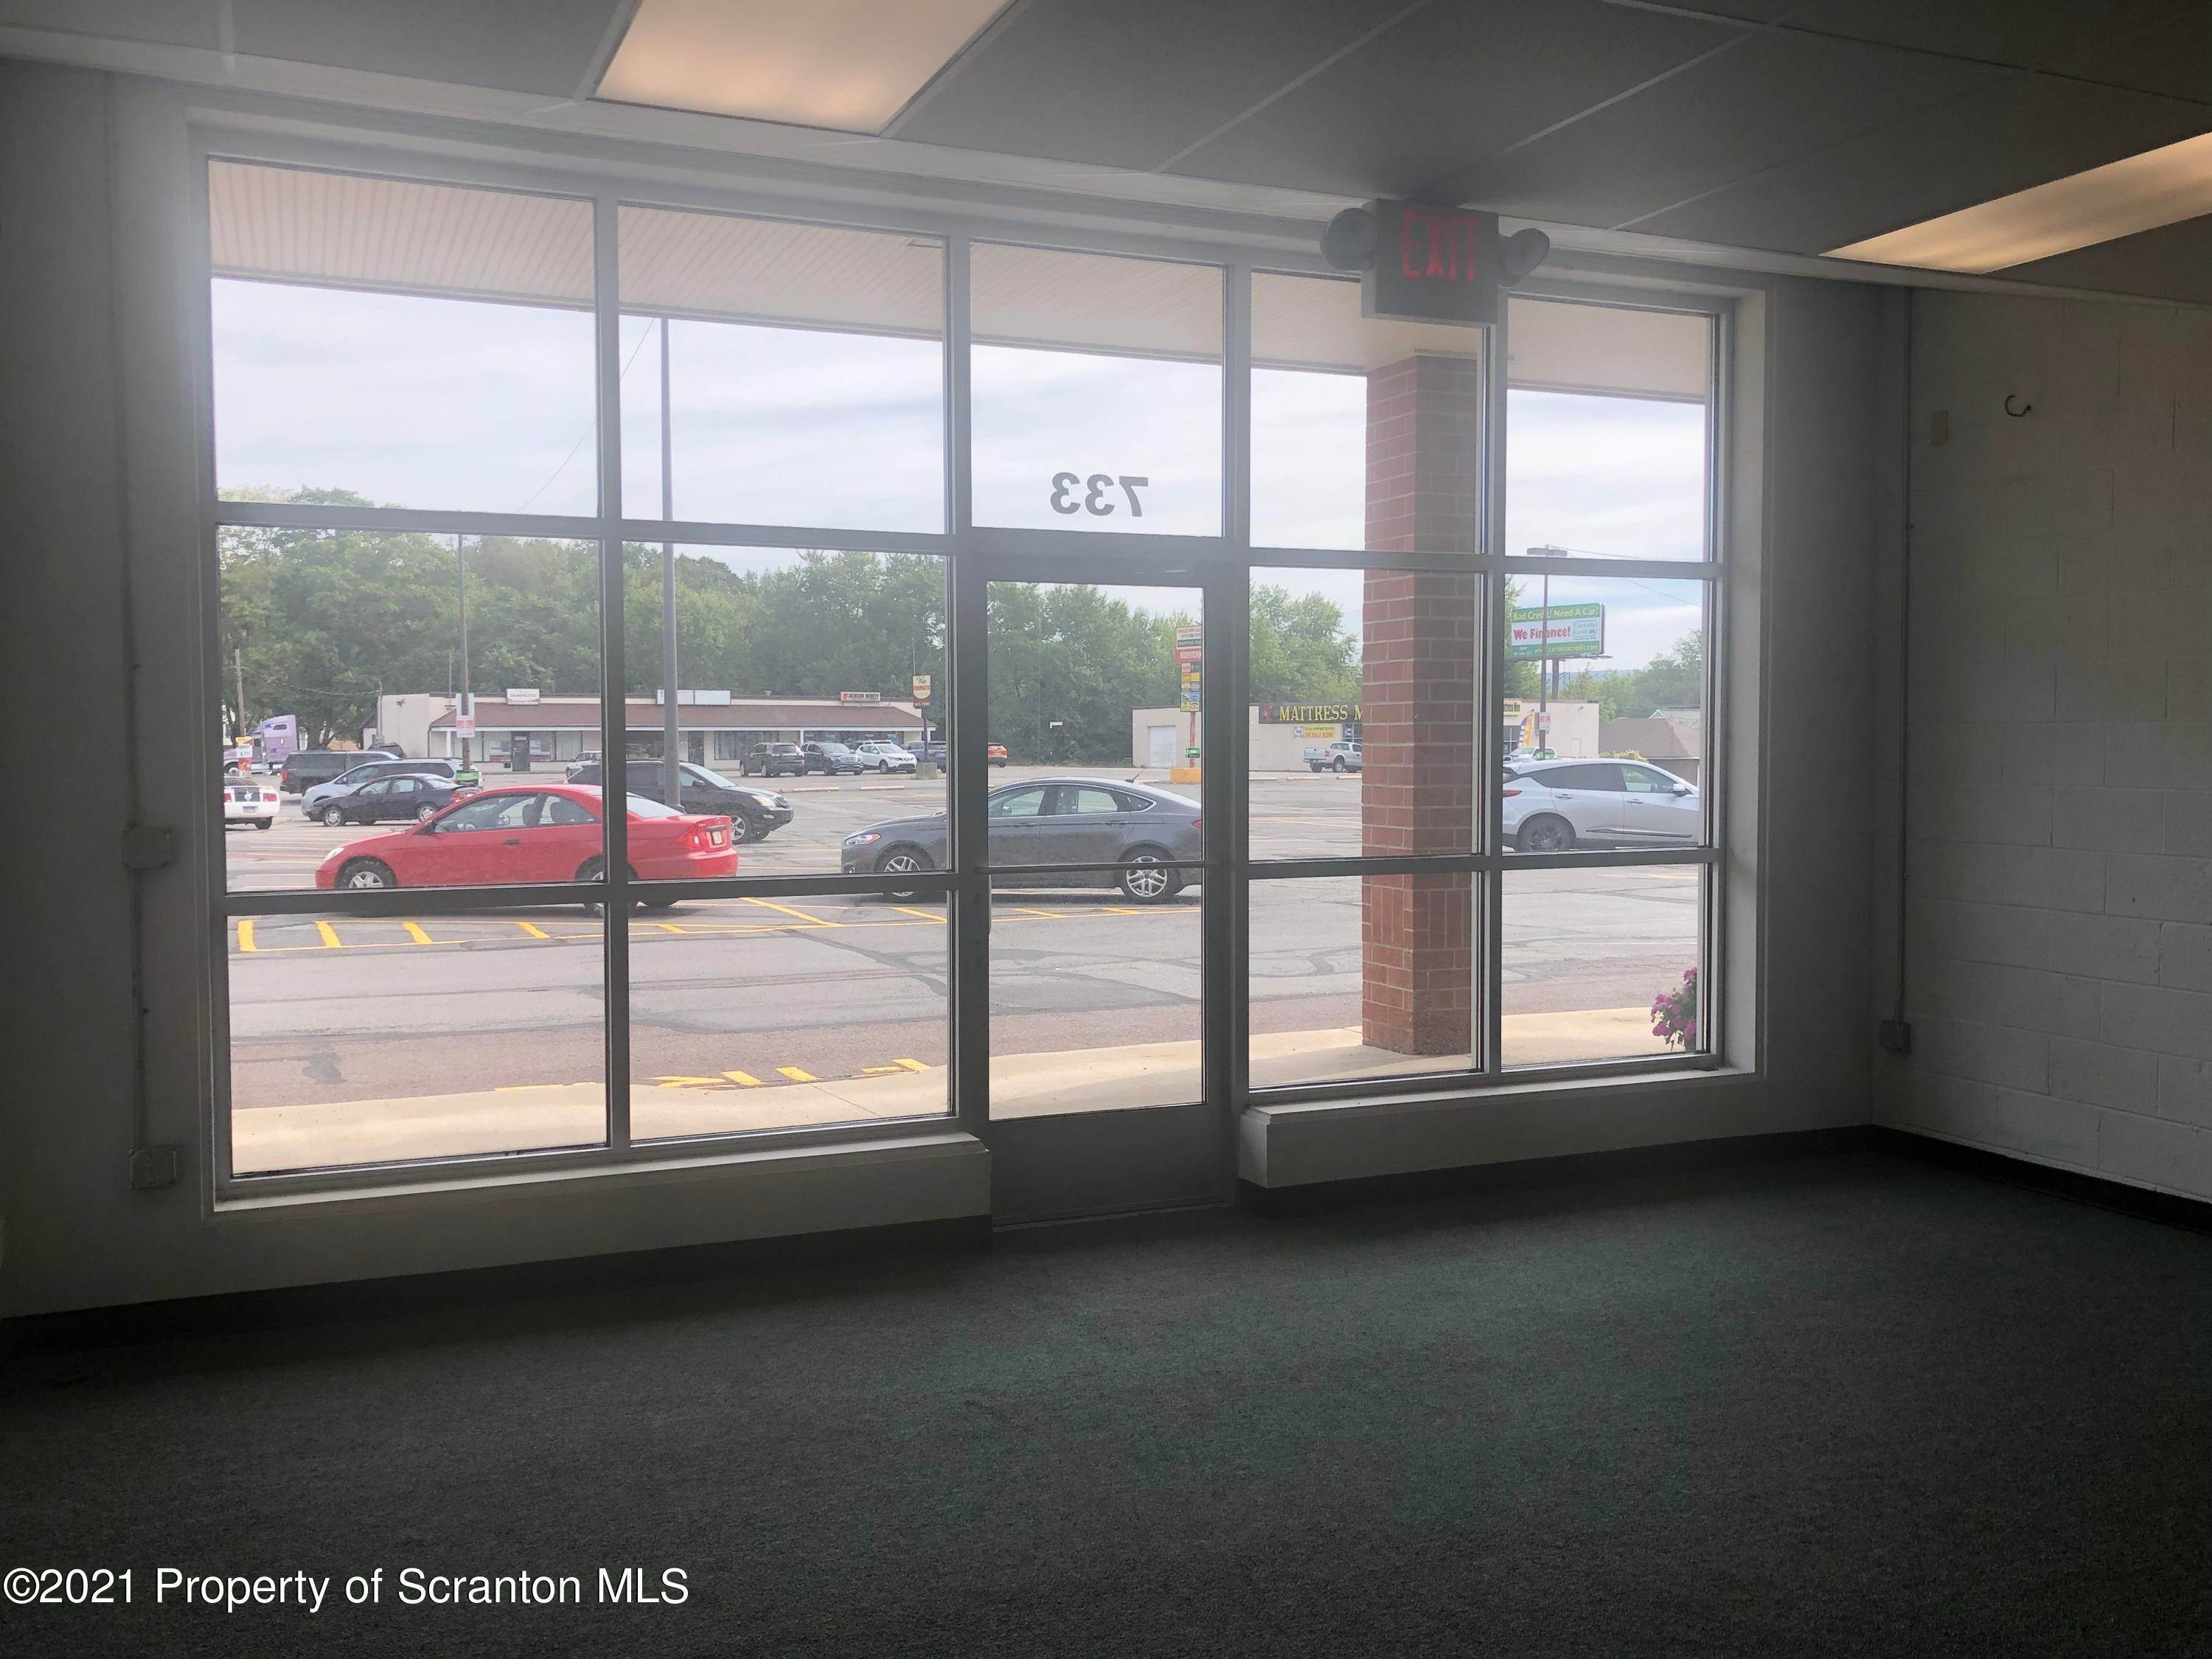 4. Commercial for Rent at 733 Oak St Scranton, Pennsylvania 18508 United States